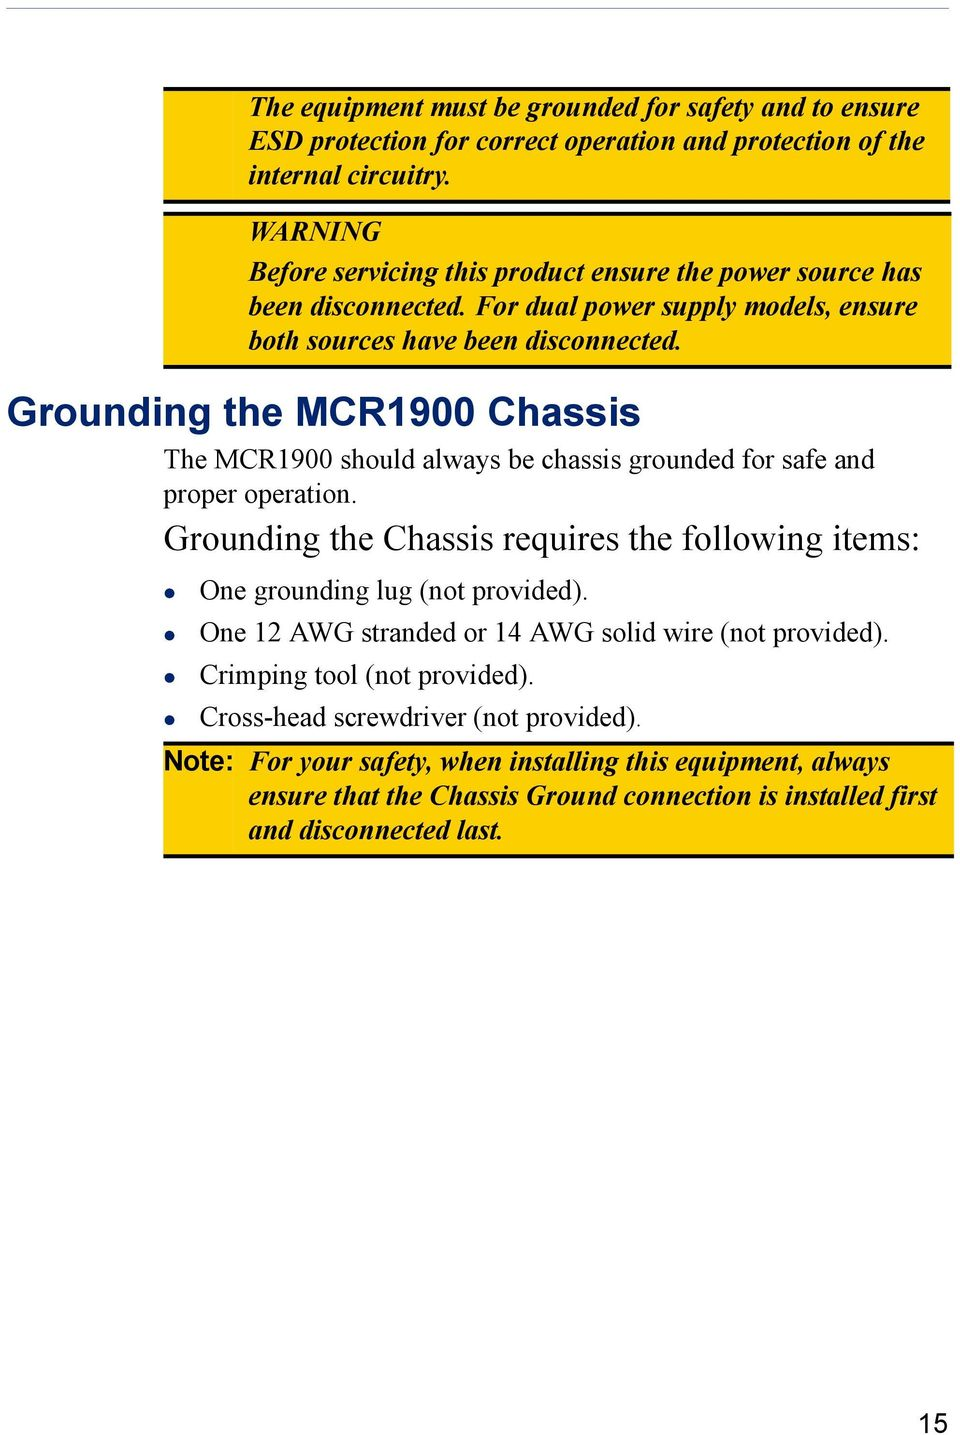 Grounding the MCR1900 Chassis The MCR1900 should always be chassis grounded for safe and proper operation.